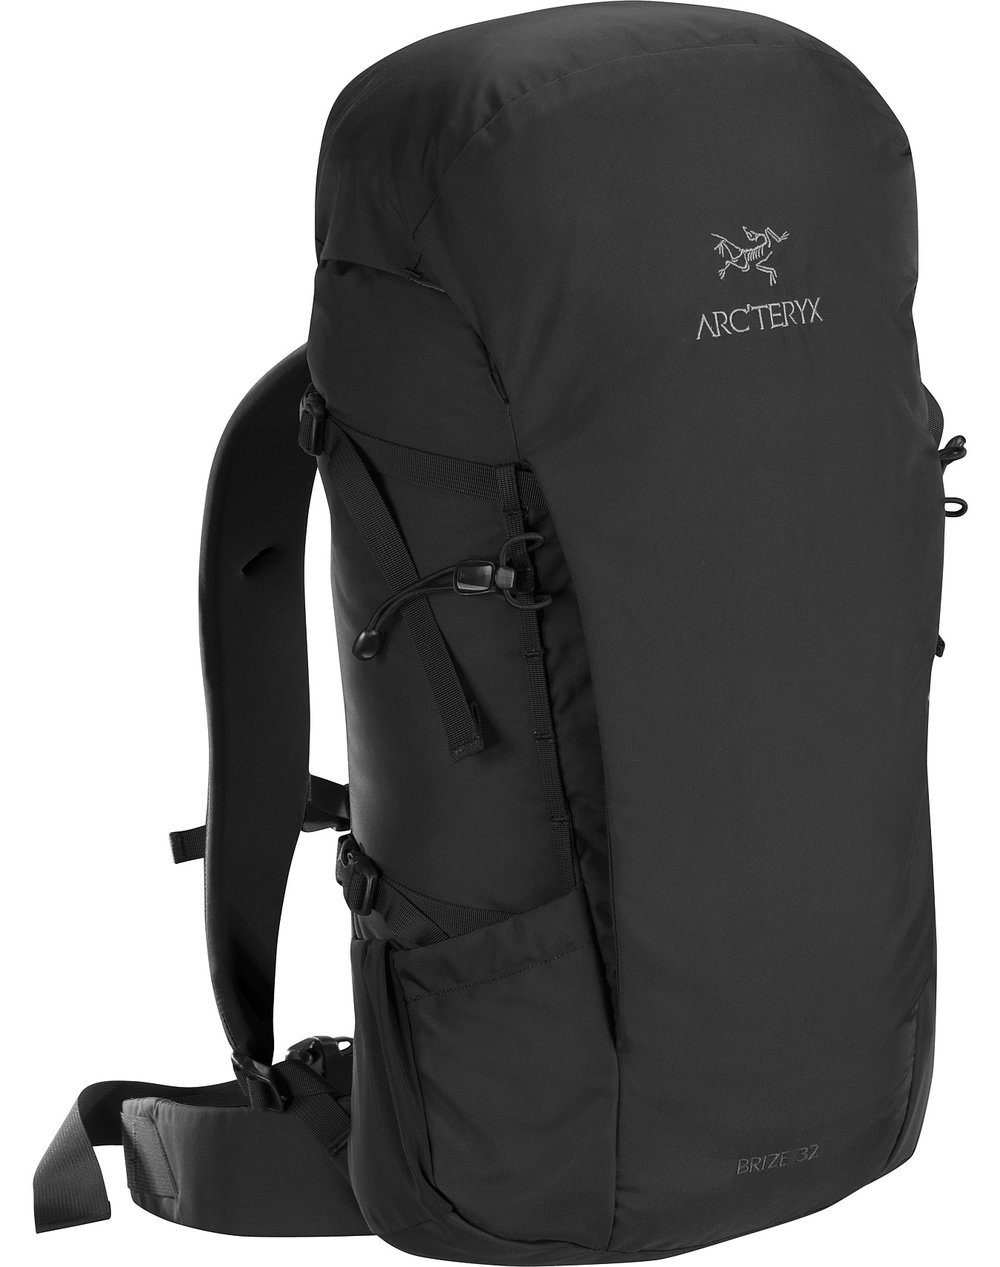 Brize-32-Backpack-Black.jpg